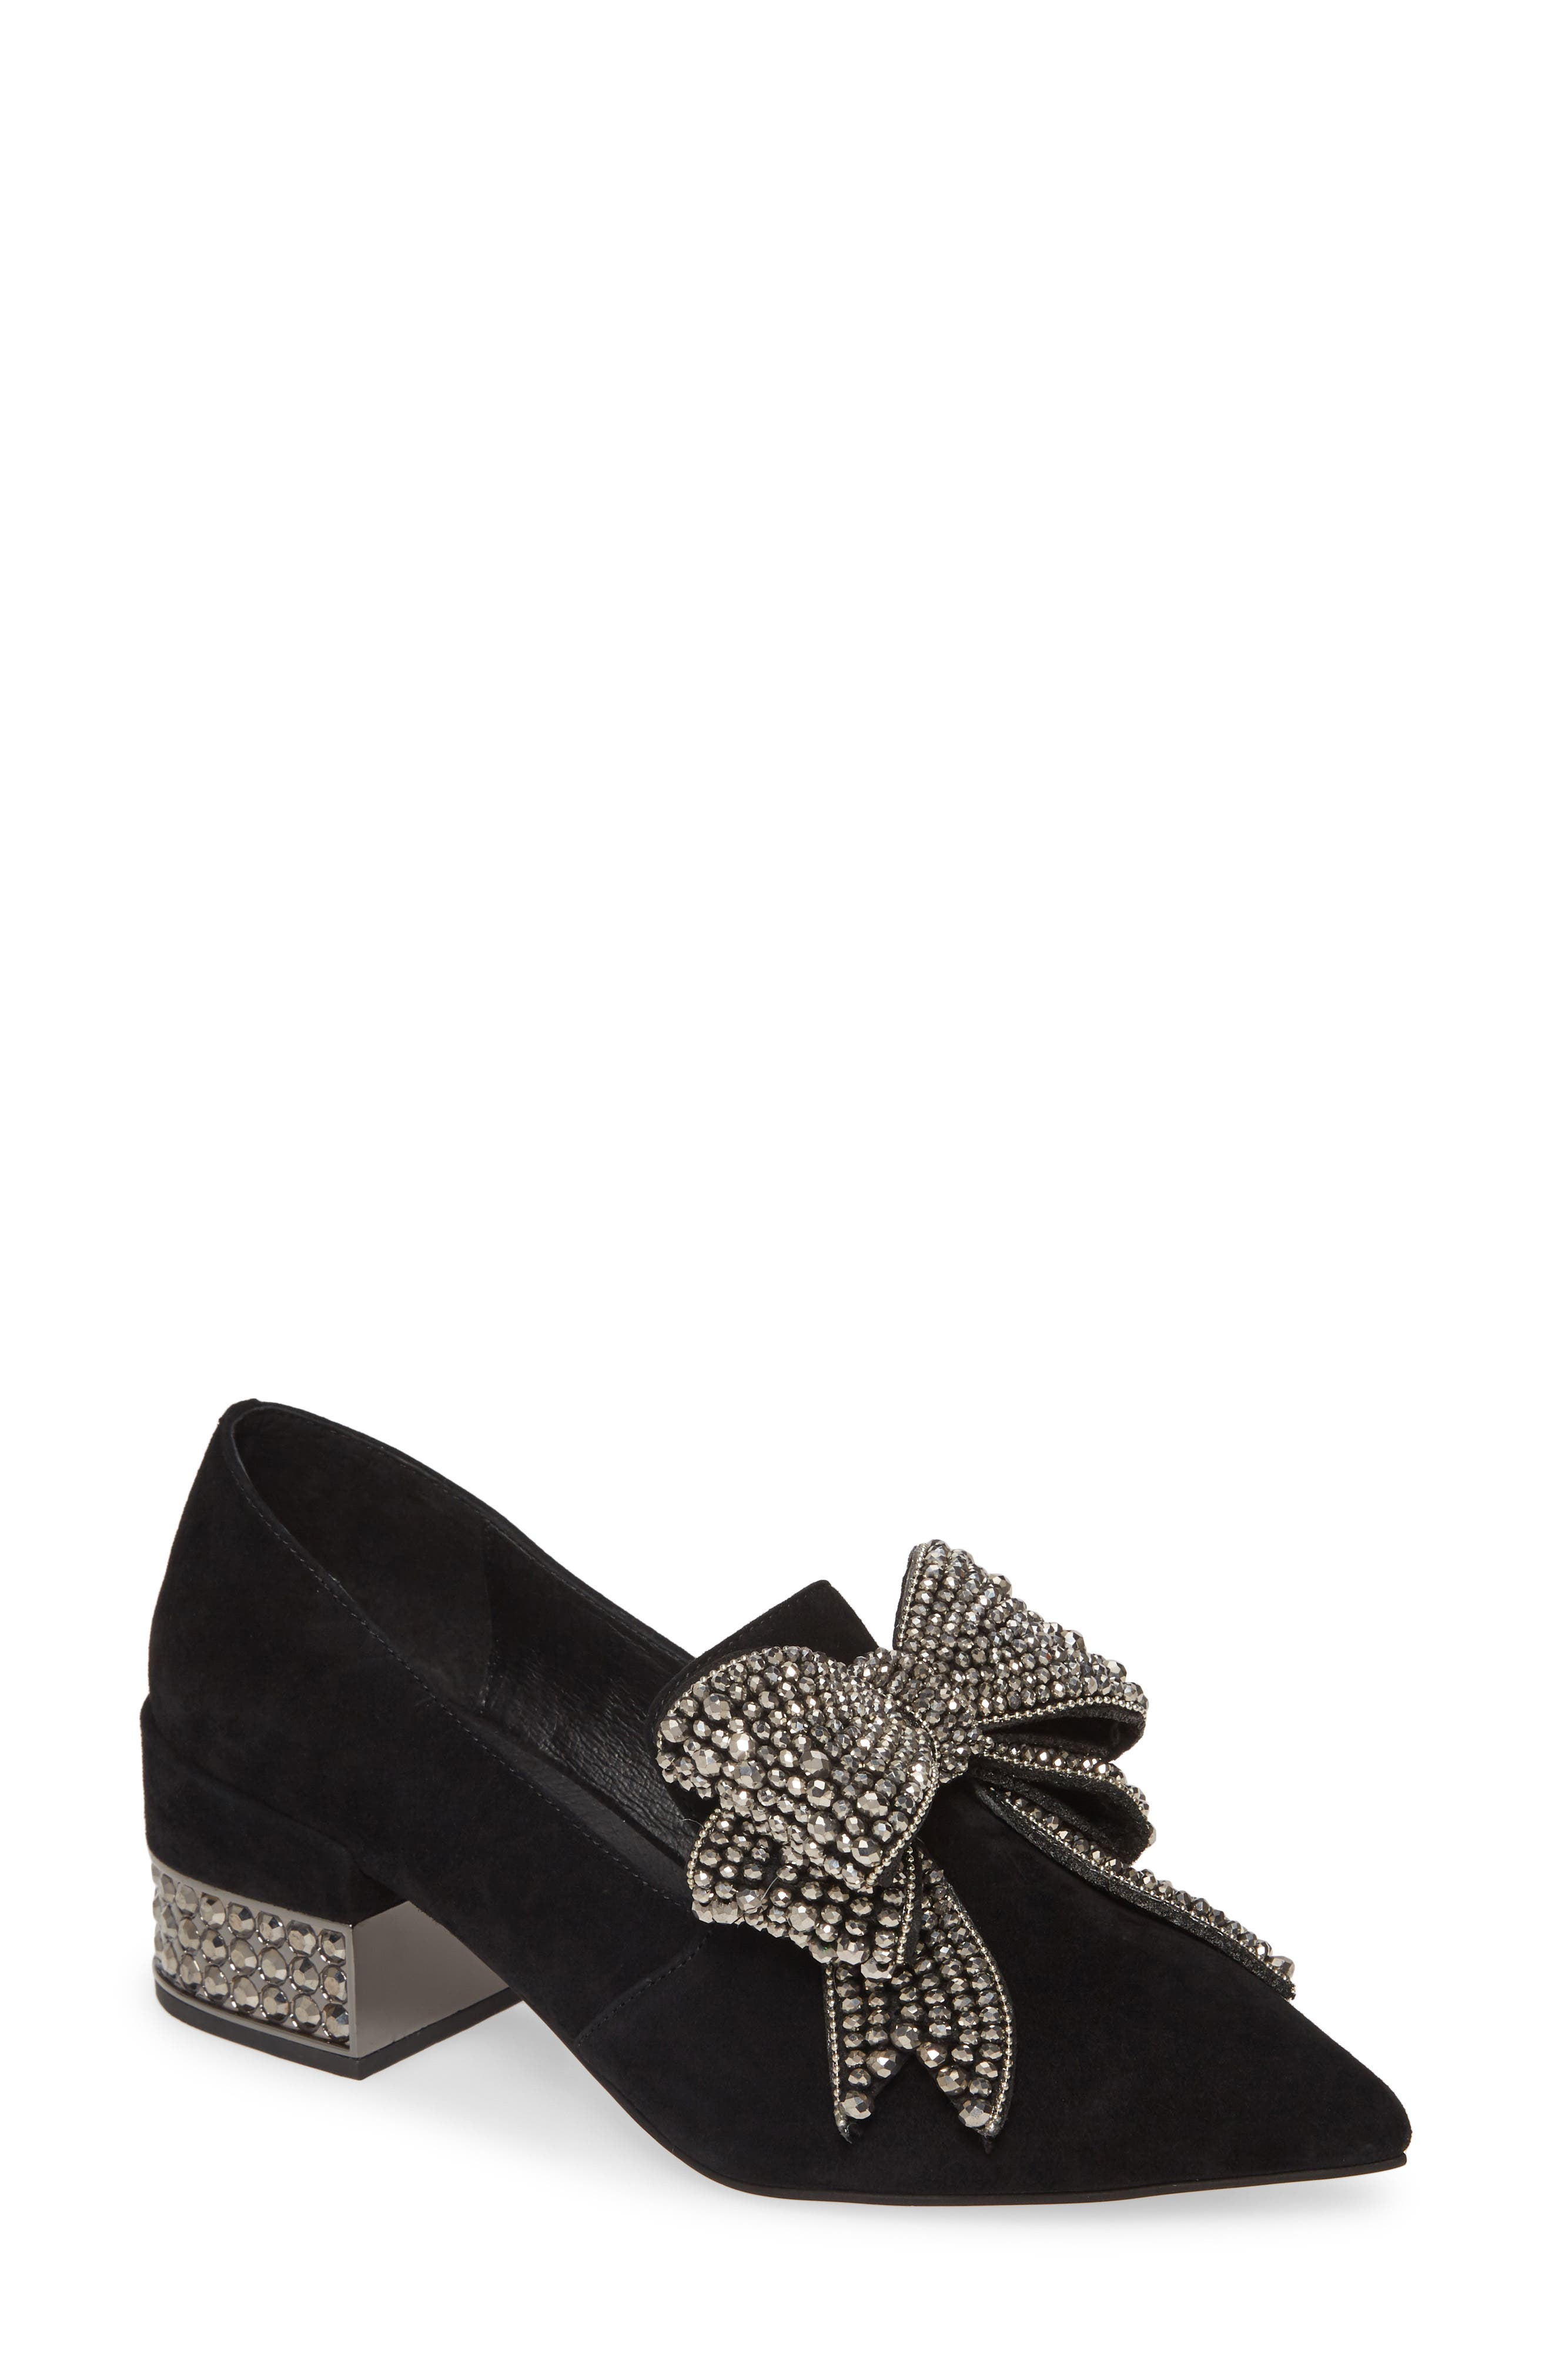 Jeffrey Campbell Valensia Pump (Women)